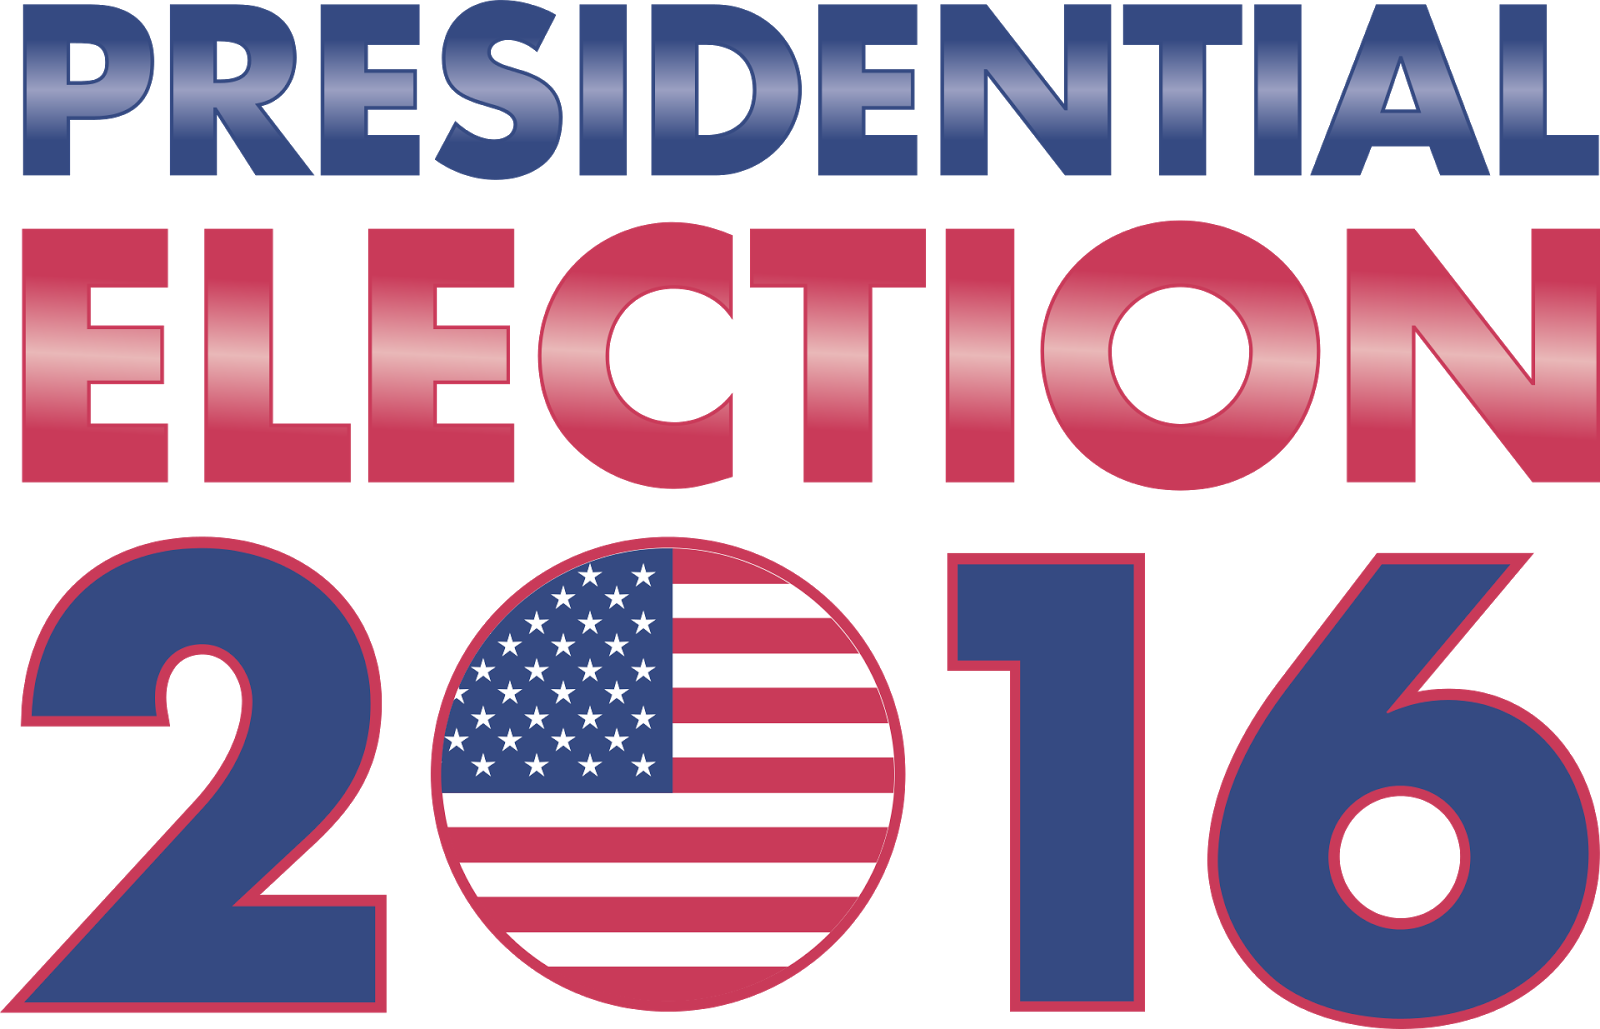 Find links to websites that teach about the presidential election & more resources in this month's Excelerating ELL linky party | The ESL Connection